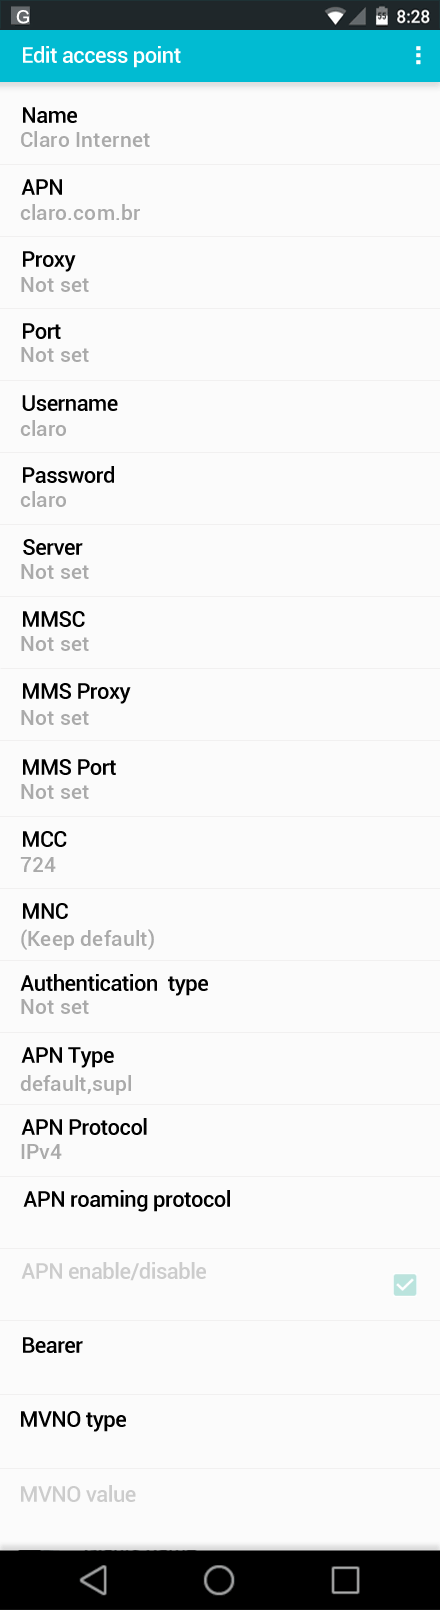 Claro Internet APN settings for Android screenshot